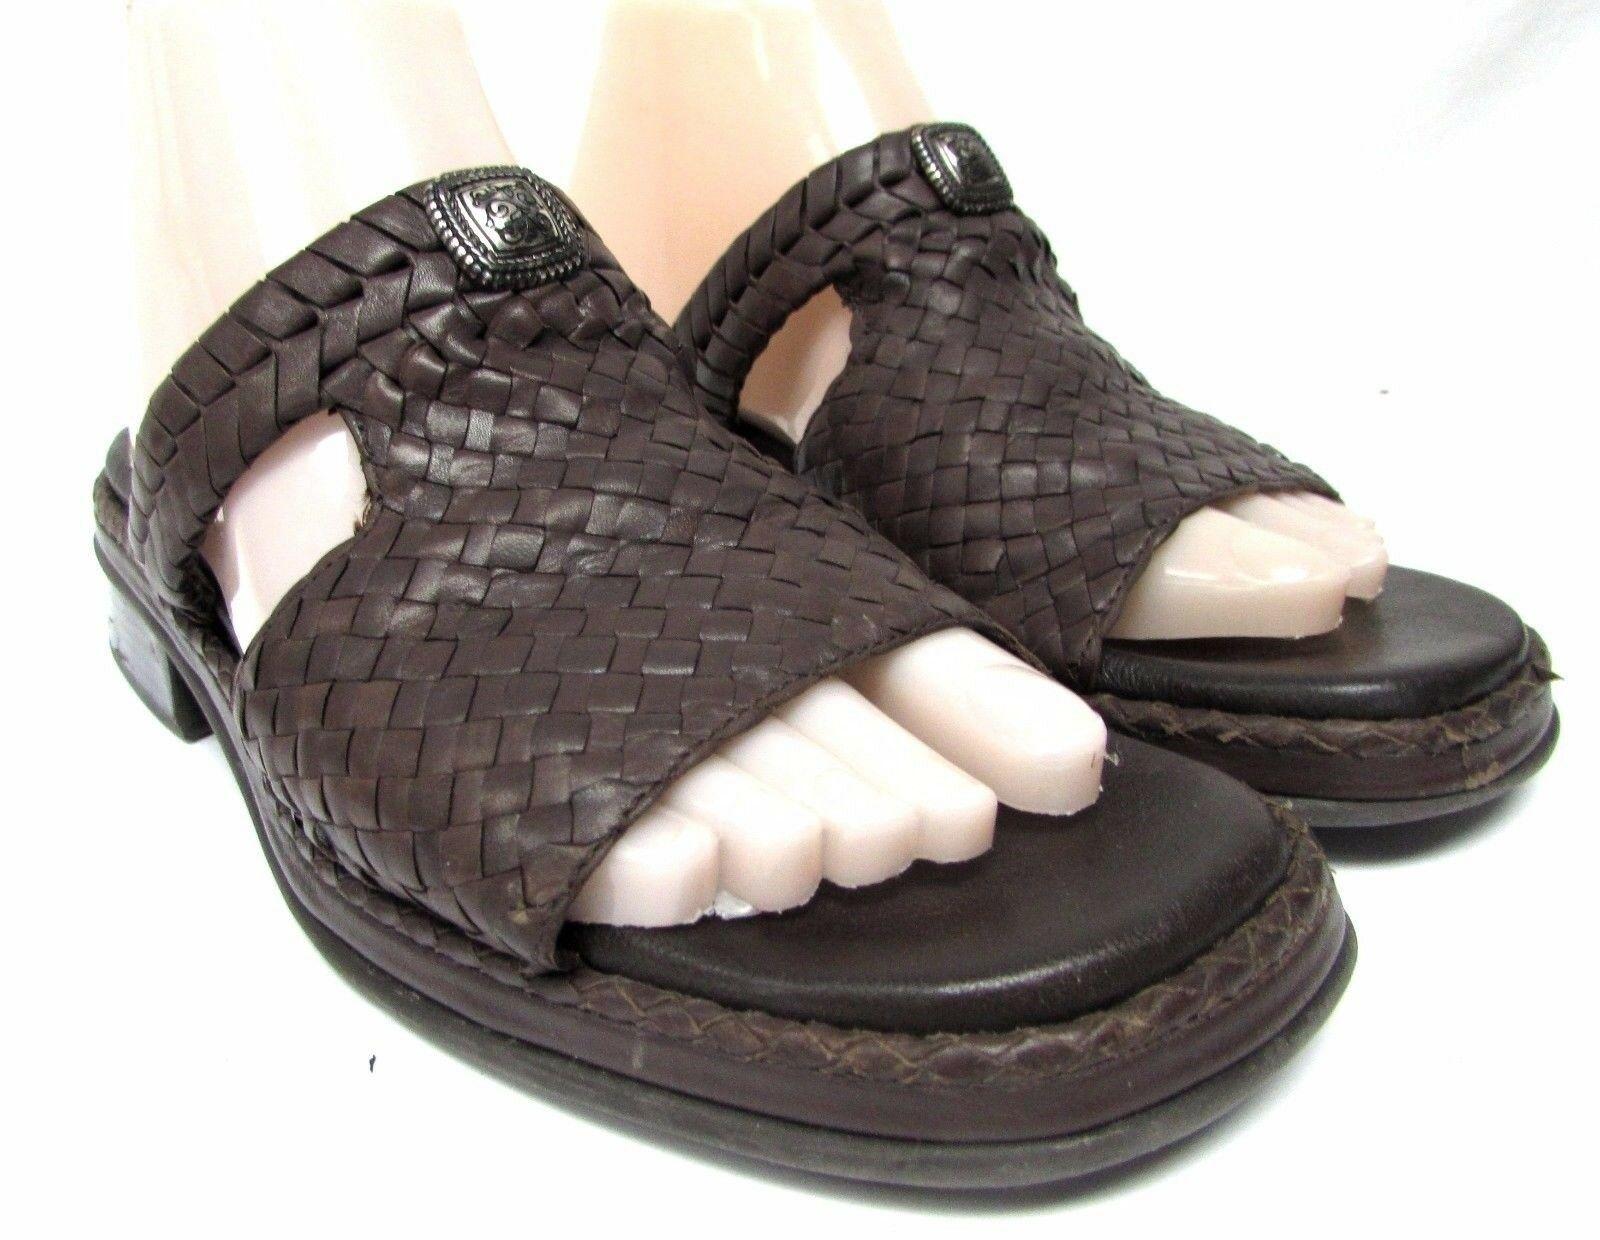 Brighton Willow women's size 8 N leather Med sandals  shoes slides Med leather heel brown cca3e1